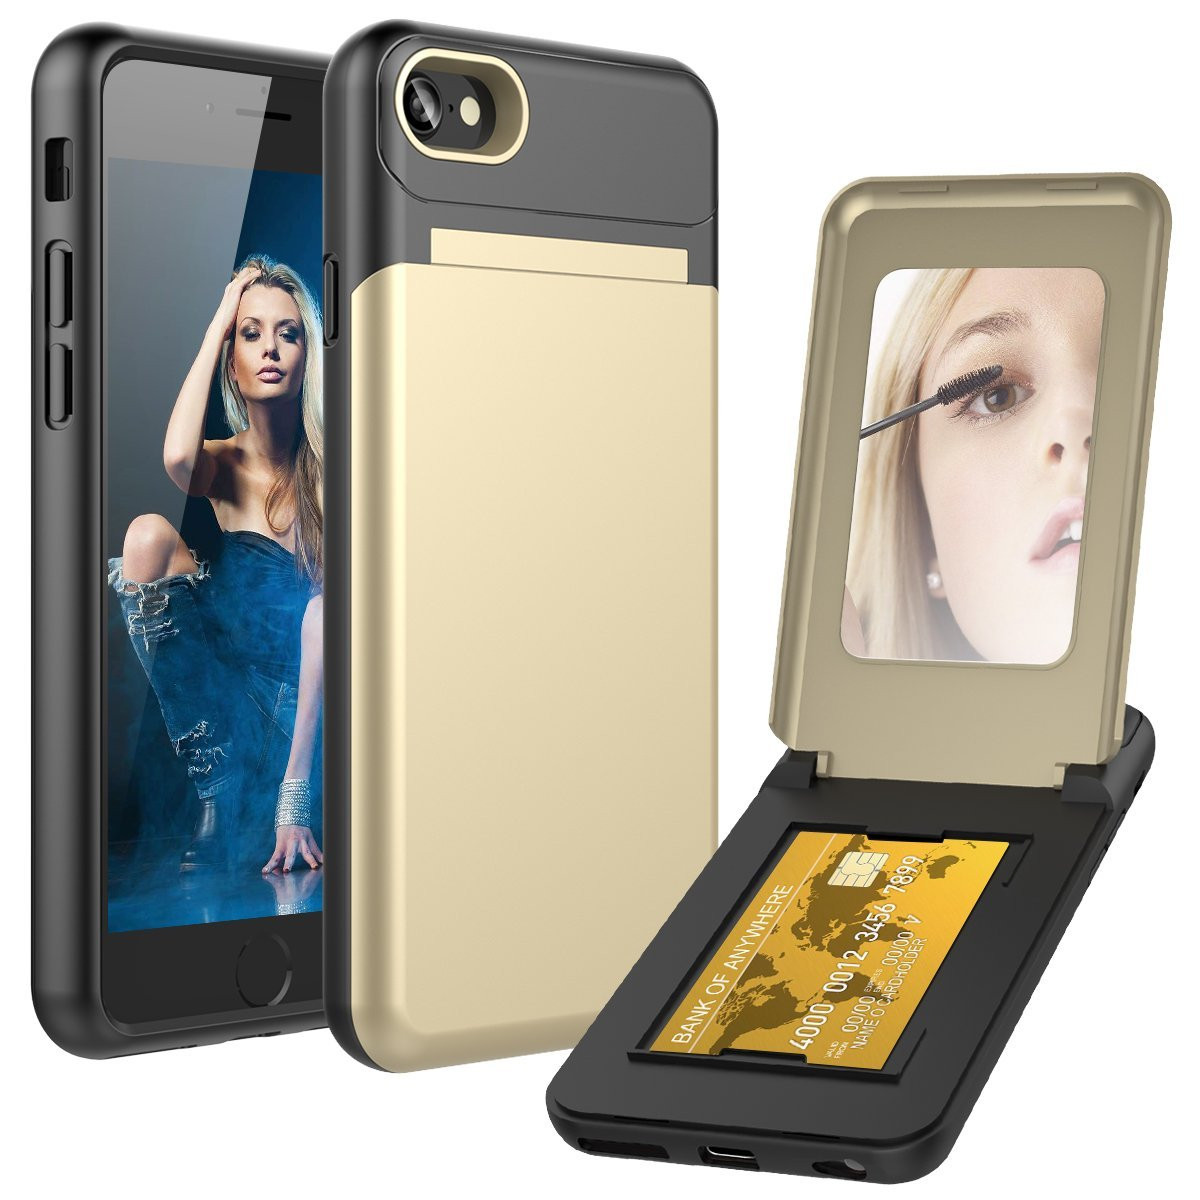 Apple iPhone 6 Plus -  Hard Phone Case with Hidden Mirror and Card Holder Compartment, Gold/Black